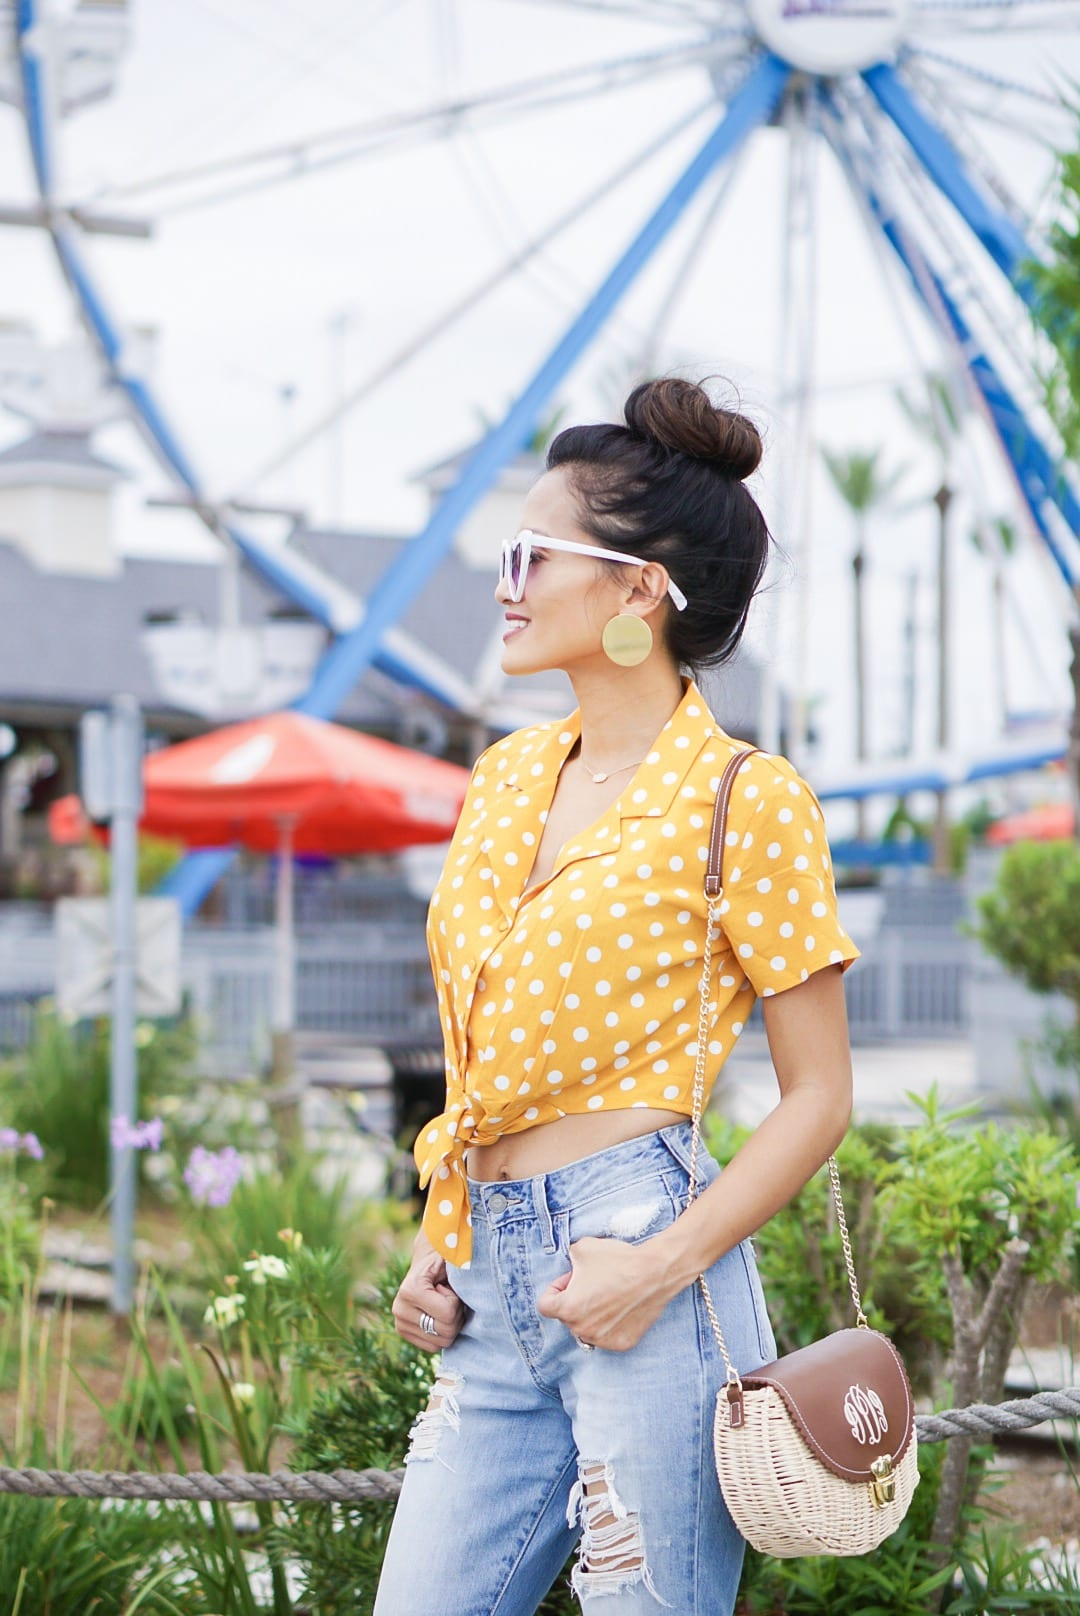 , polka dot, polka dot blouse, polka dot top, yellow polka dot, summer style #summerfashion, heart shaped glasses, monogrammed bag, straw bag, woven sandals, 60's inspired fashion, affordable fashion, mom jeans